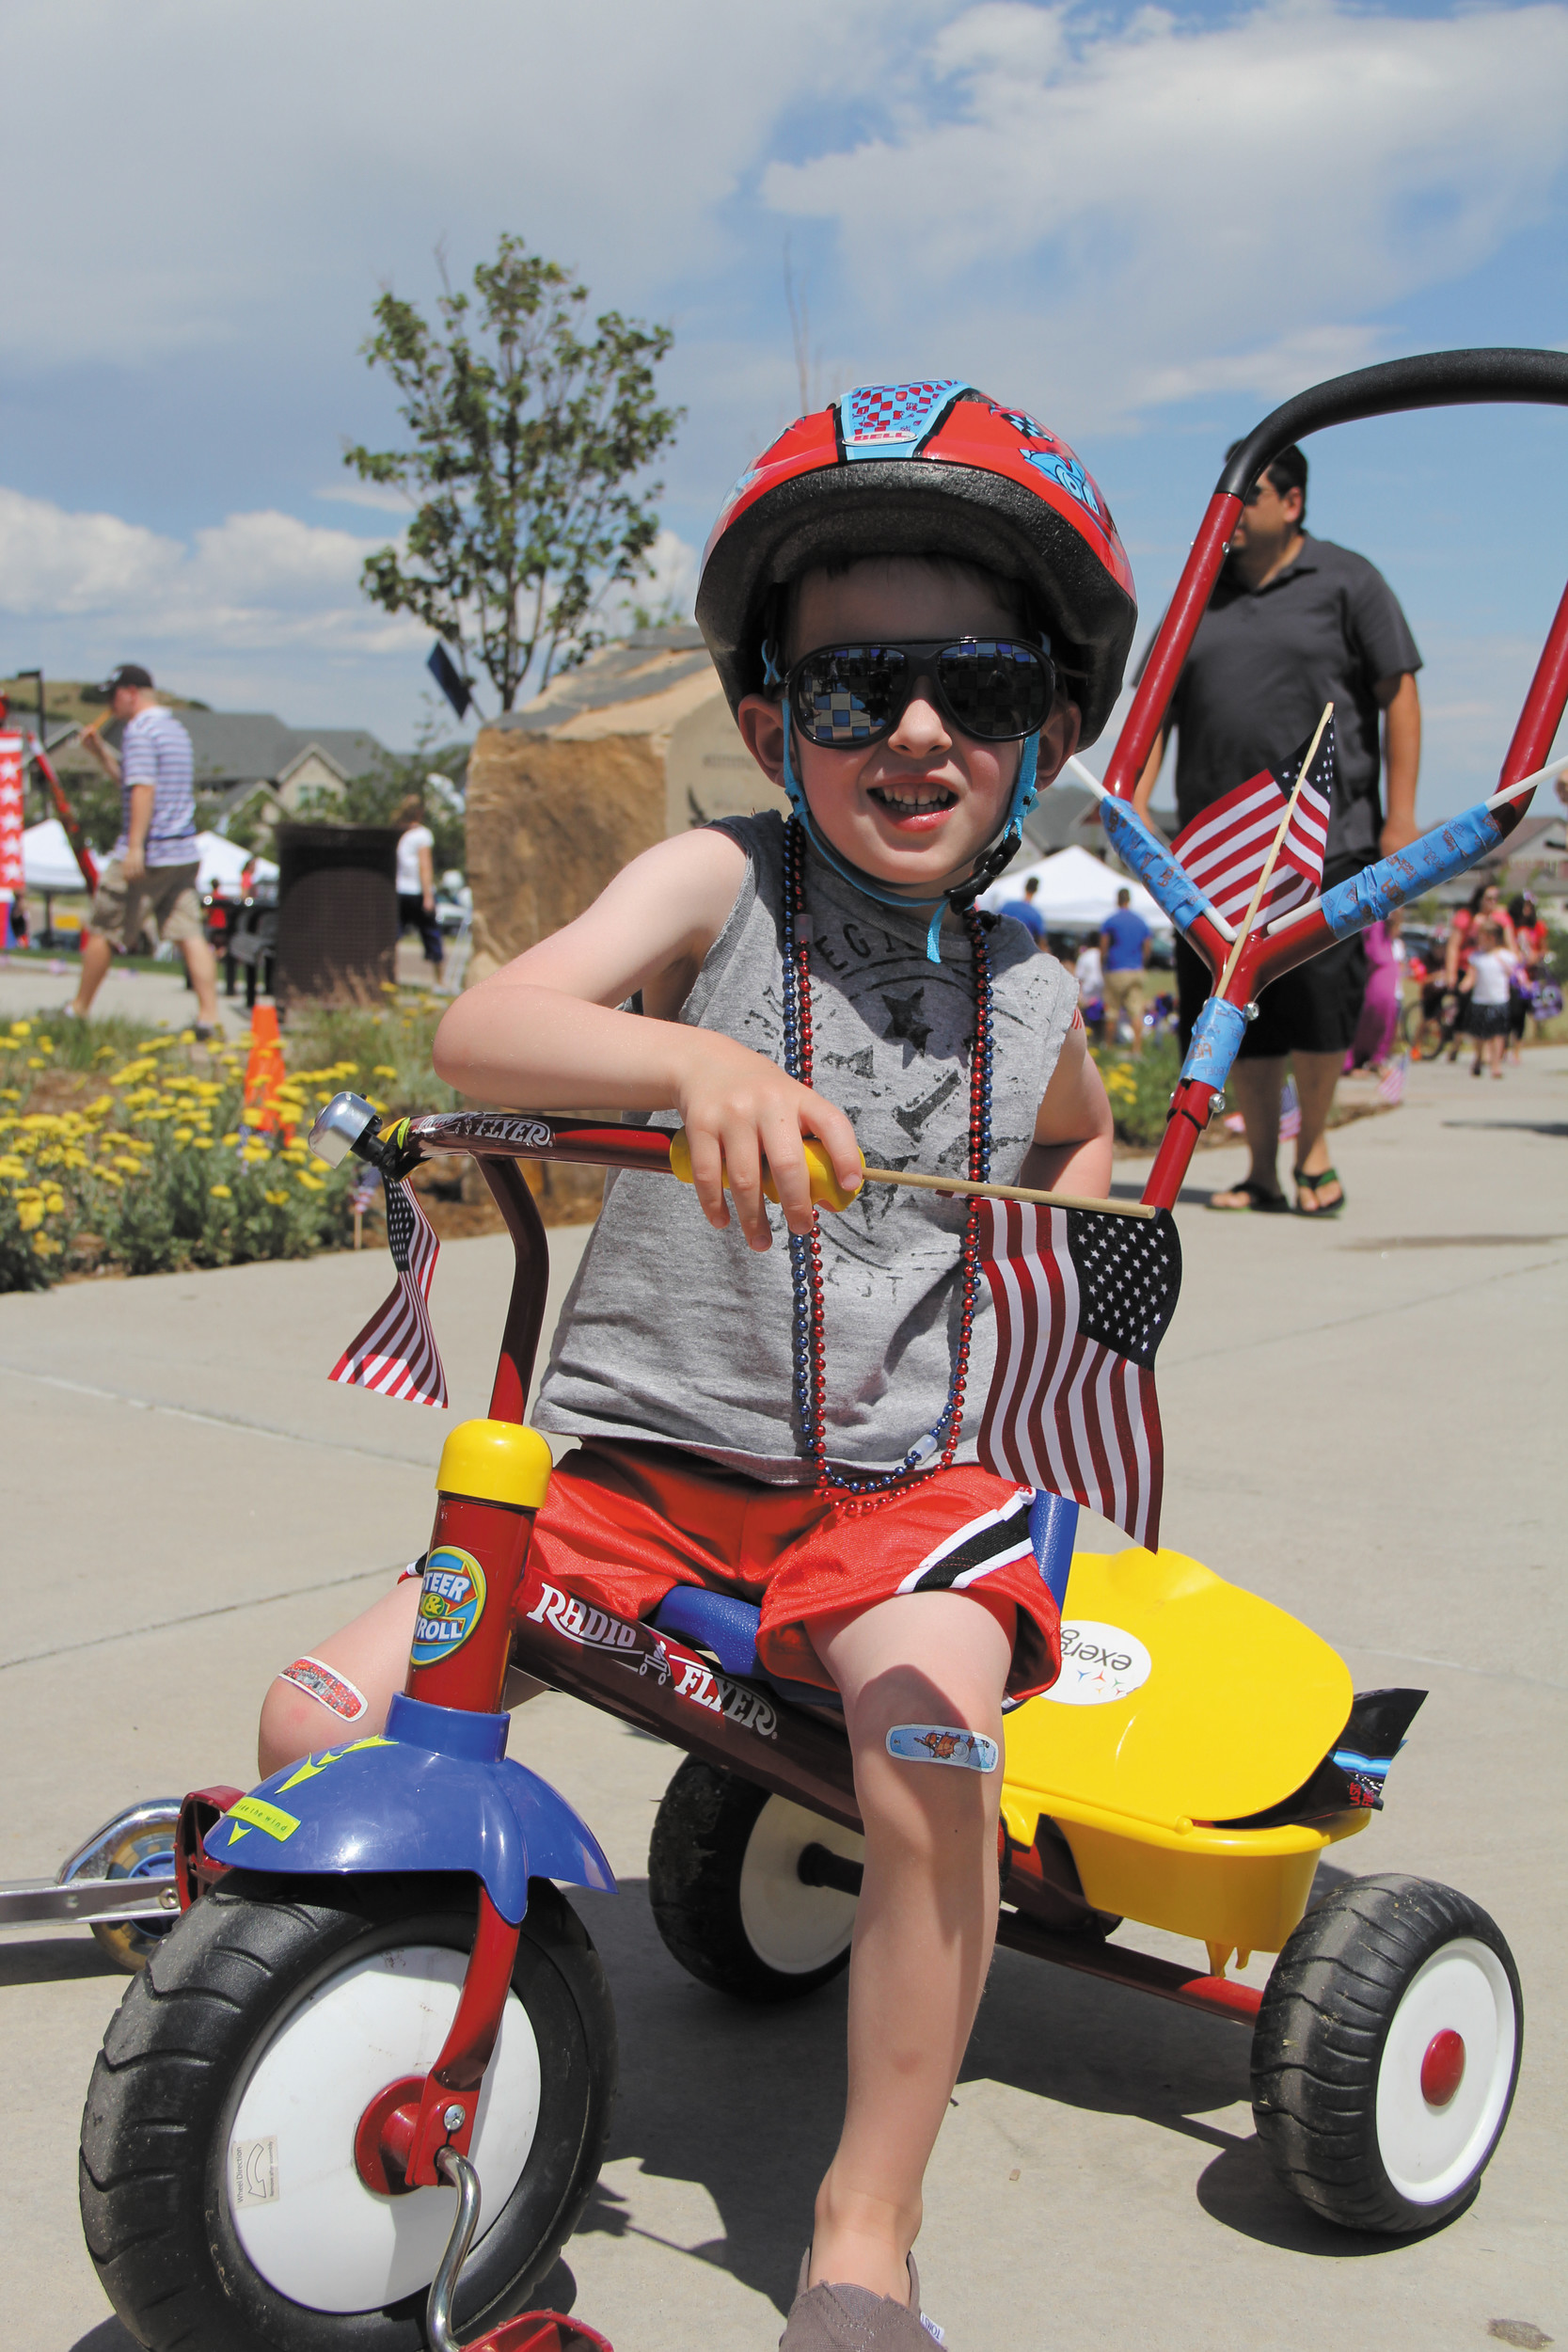 Ayden Stamey, 3, prepares to ride his bike in the Meadows annual Fourth of July Children's Bike Parade at Bison Park.